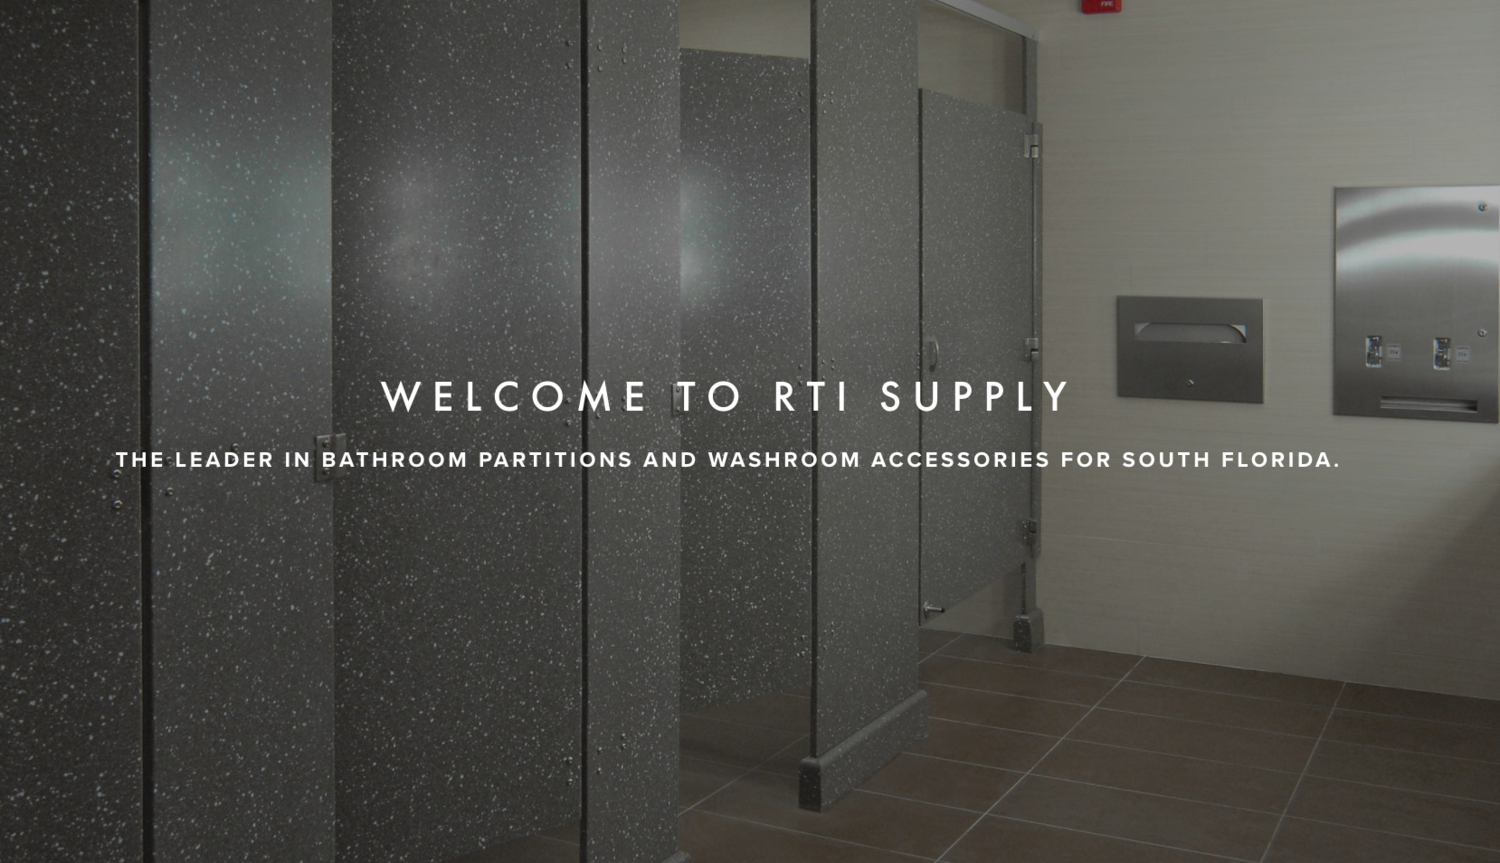 Rti Supply The Leader For Bathroom Partitions In South Florida